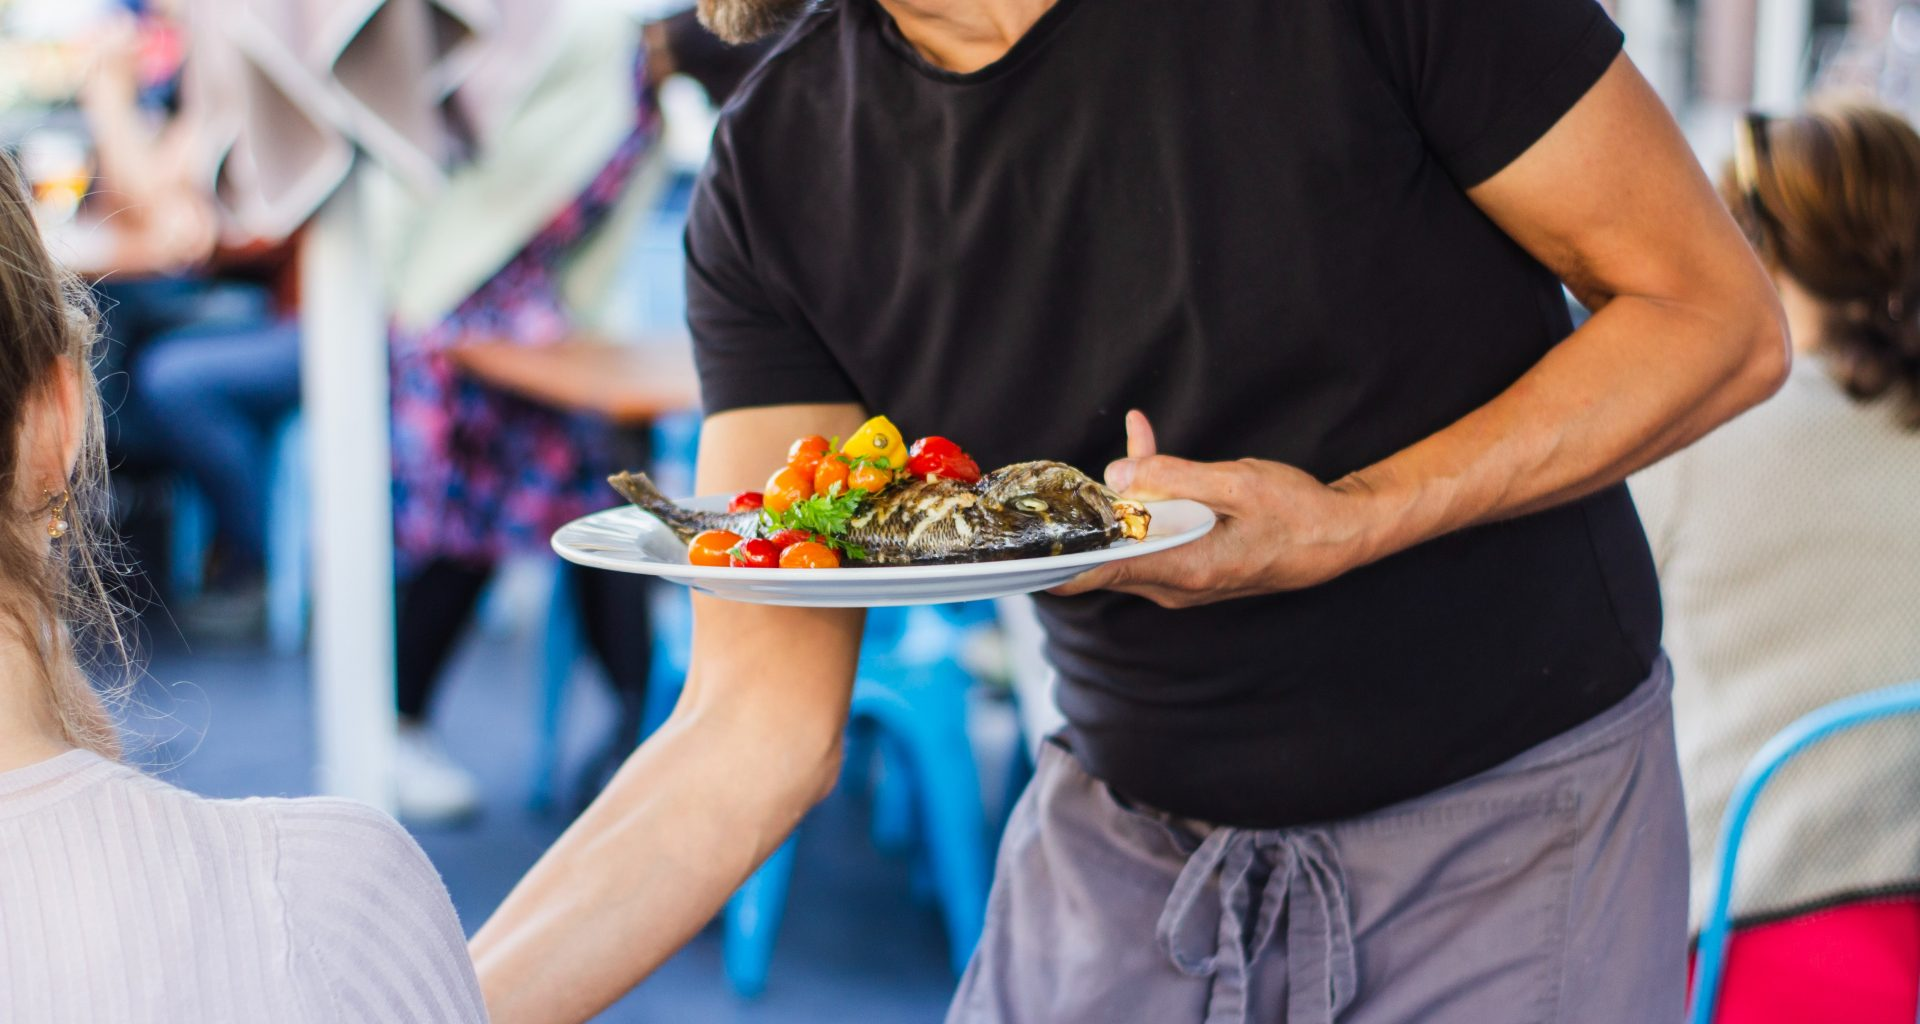 a food runner is delivering food to customers' table